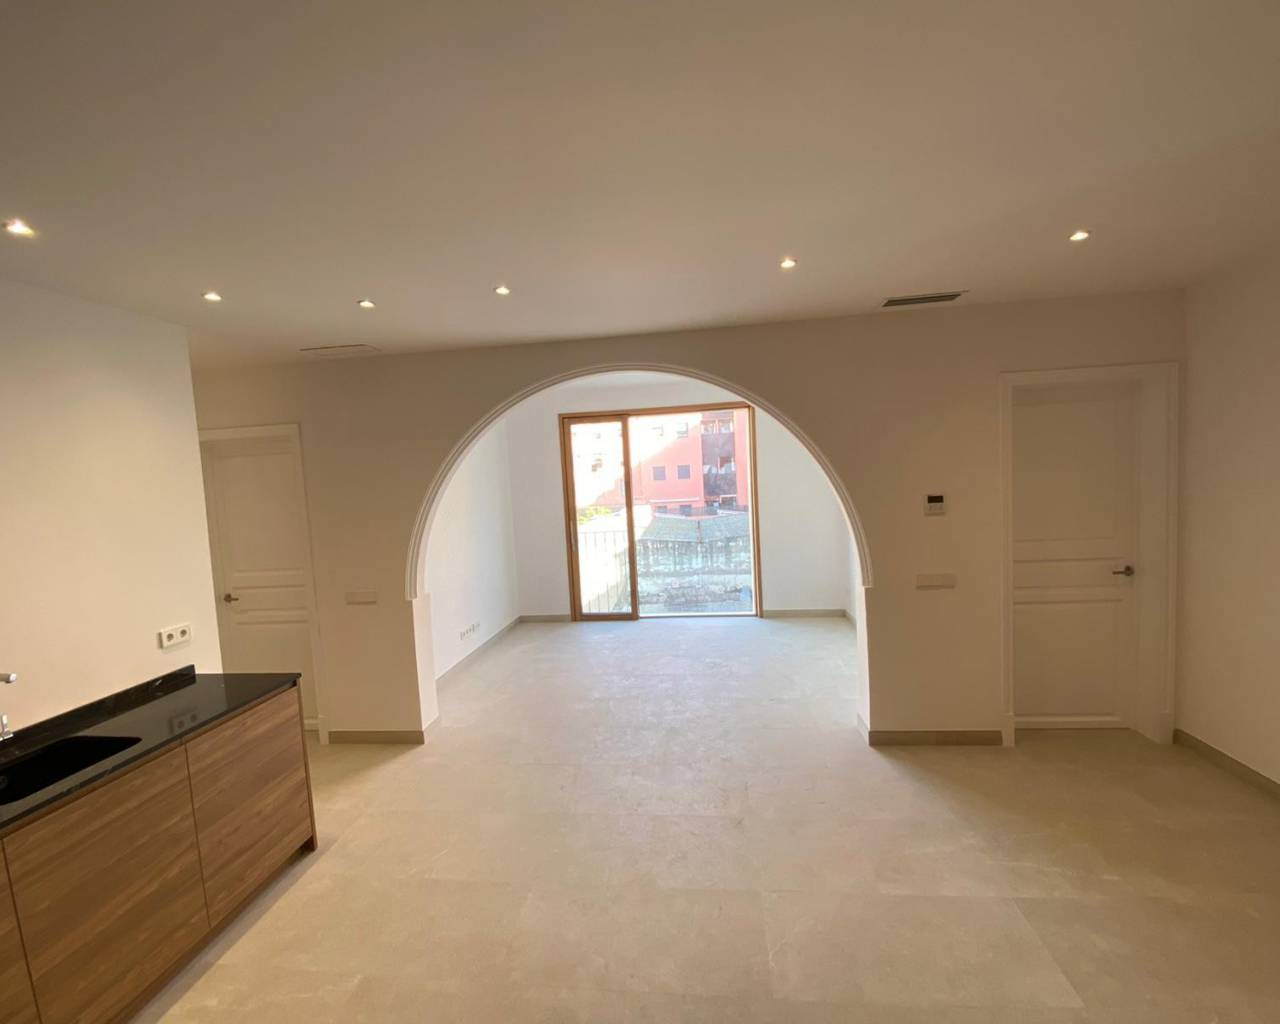 2 bed and fully fitted kitchen in rent in Palma De Mallorca